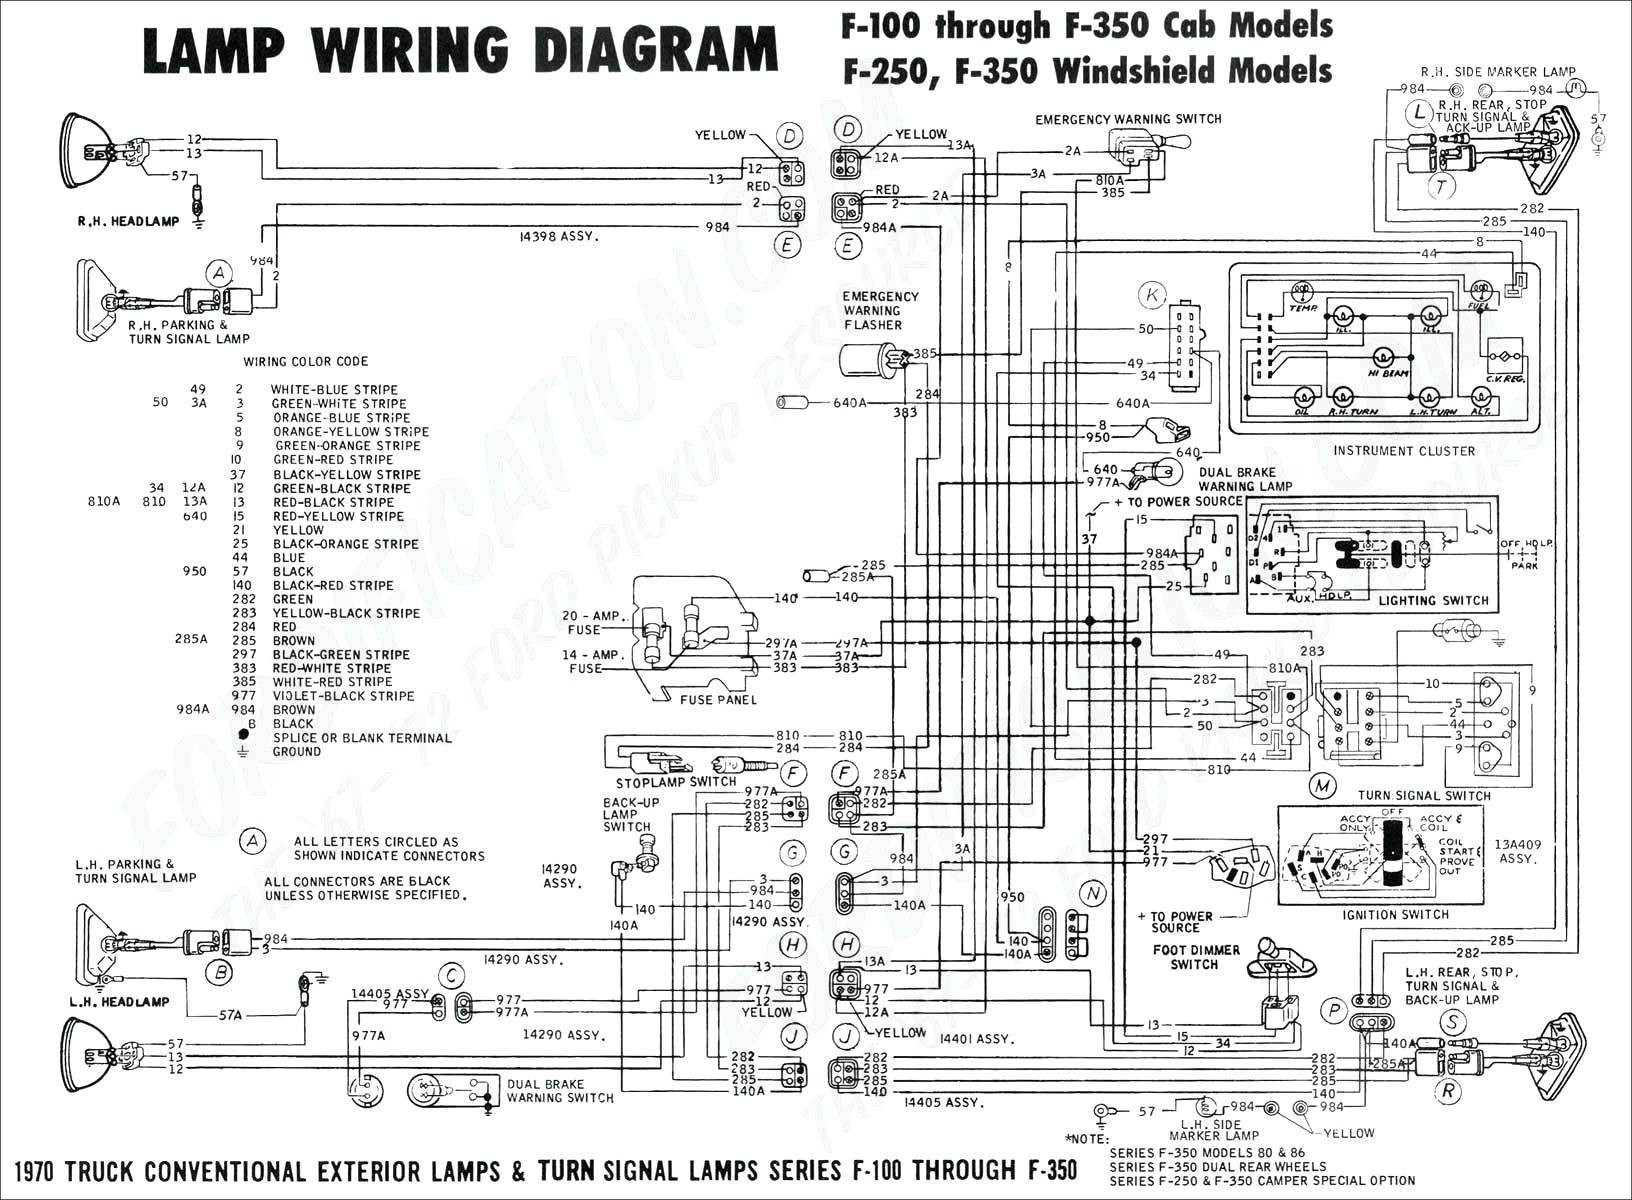 2002 ford Focus Se Engine Diagram 2002 ford F 350 Wiring Diagram Data Wiring Diagrams • Of 2002 ford Focus Se Engine Diagram